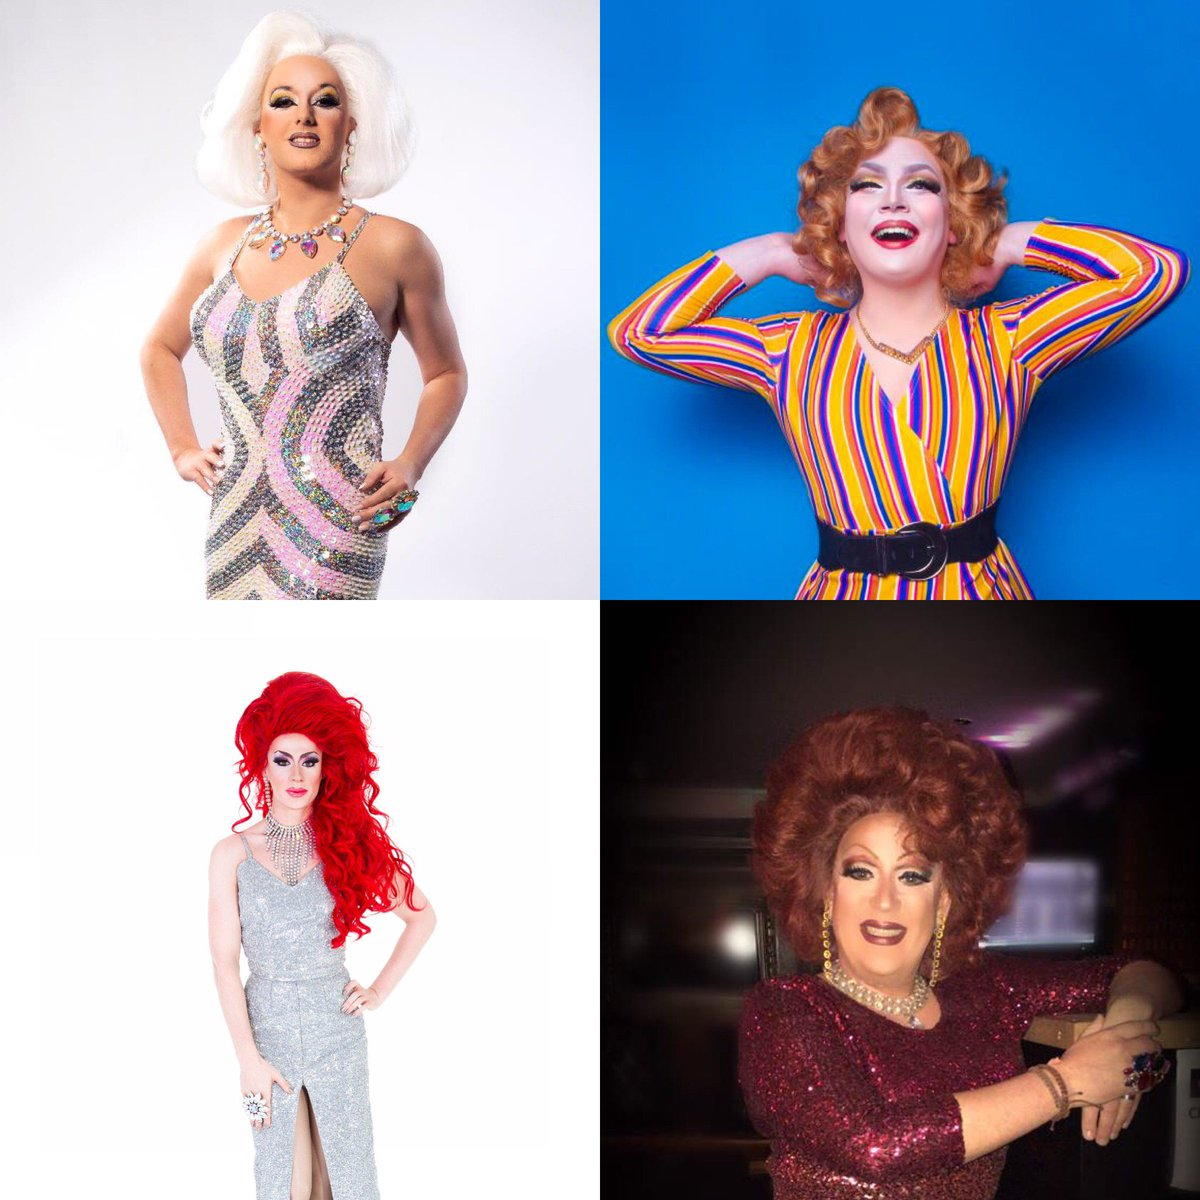 It's Drag Queen takeover day today on @BBCRadioManc   Listen in as queens   @Belindascandal @Divinadecampo @themistyshow @DonnaTrumpUK take to the airwaves to celebrate @ManchesterPride   They'll join @radiochelsea @BeckyWant Mike Sweeney @ConnorPhillips  #dragqueen <br>http://pic.twitter.com/PcukTaeE4i